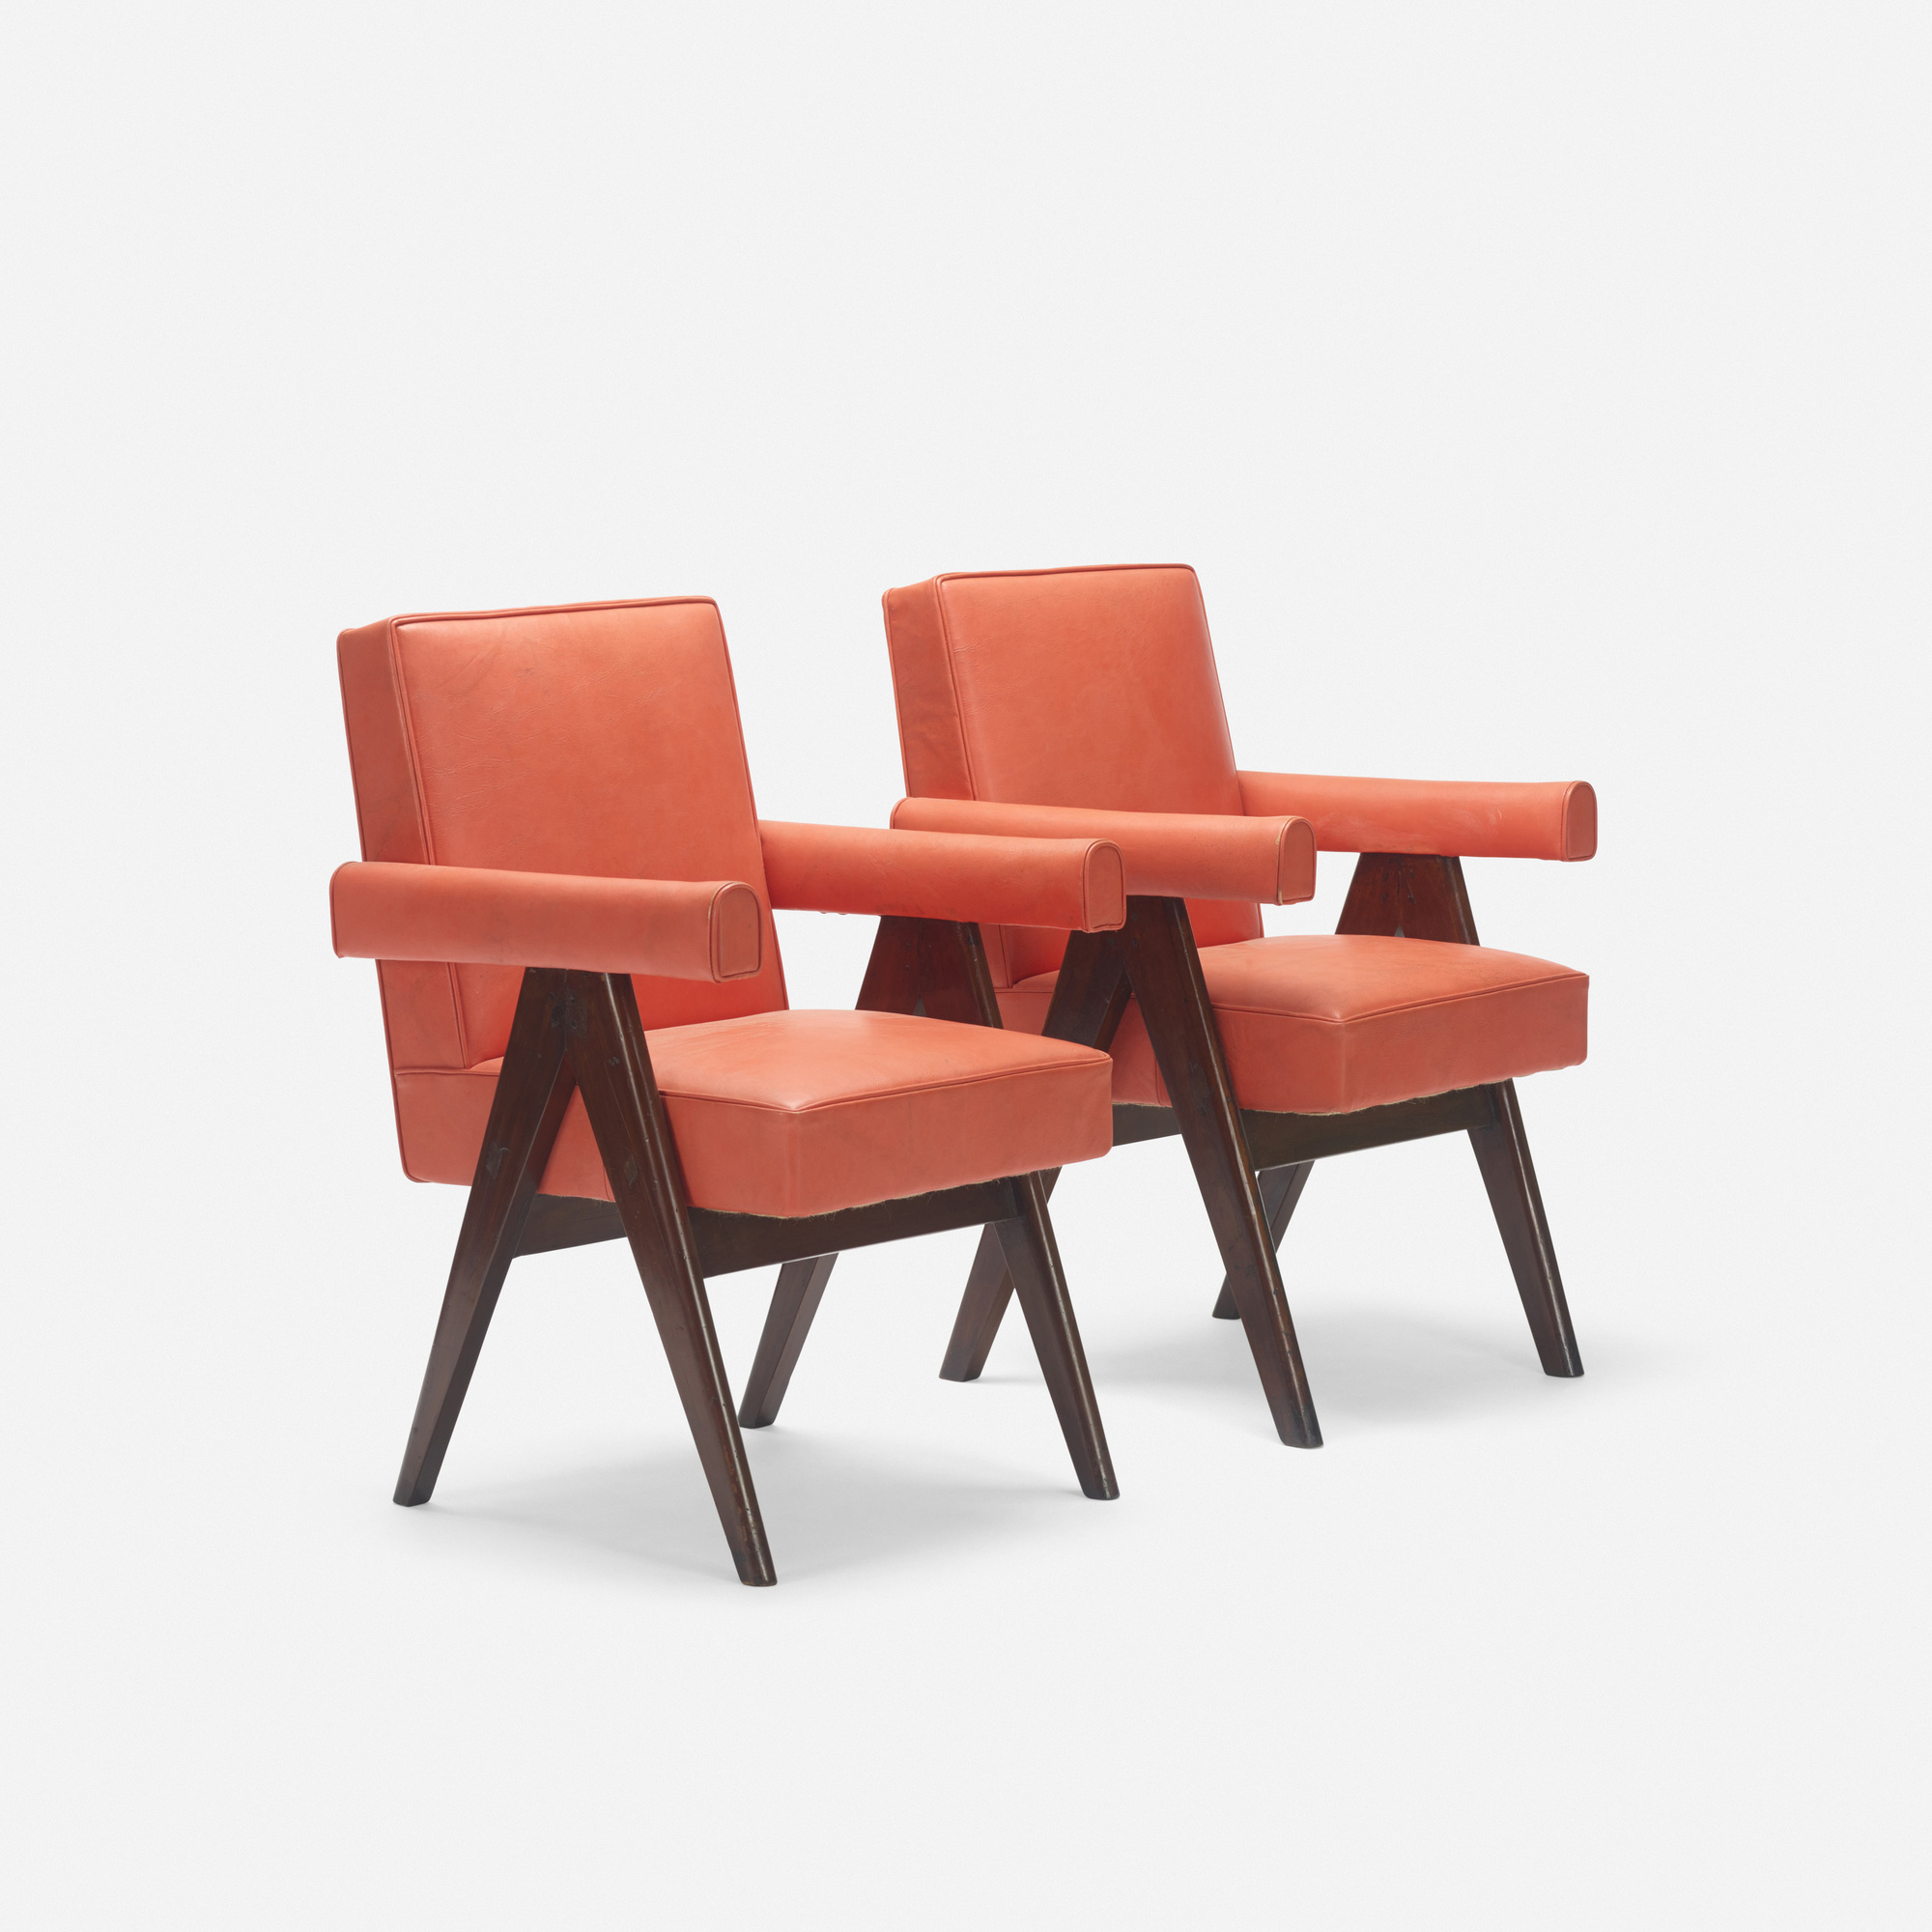 117: Pierre Jeanneret / pair of Committee armchairs from the High Court, Chandigarh (2 of 3)